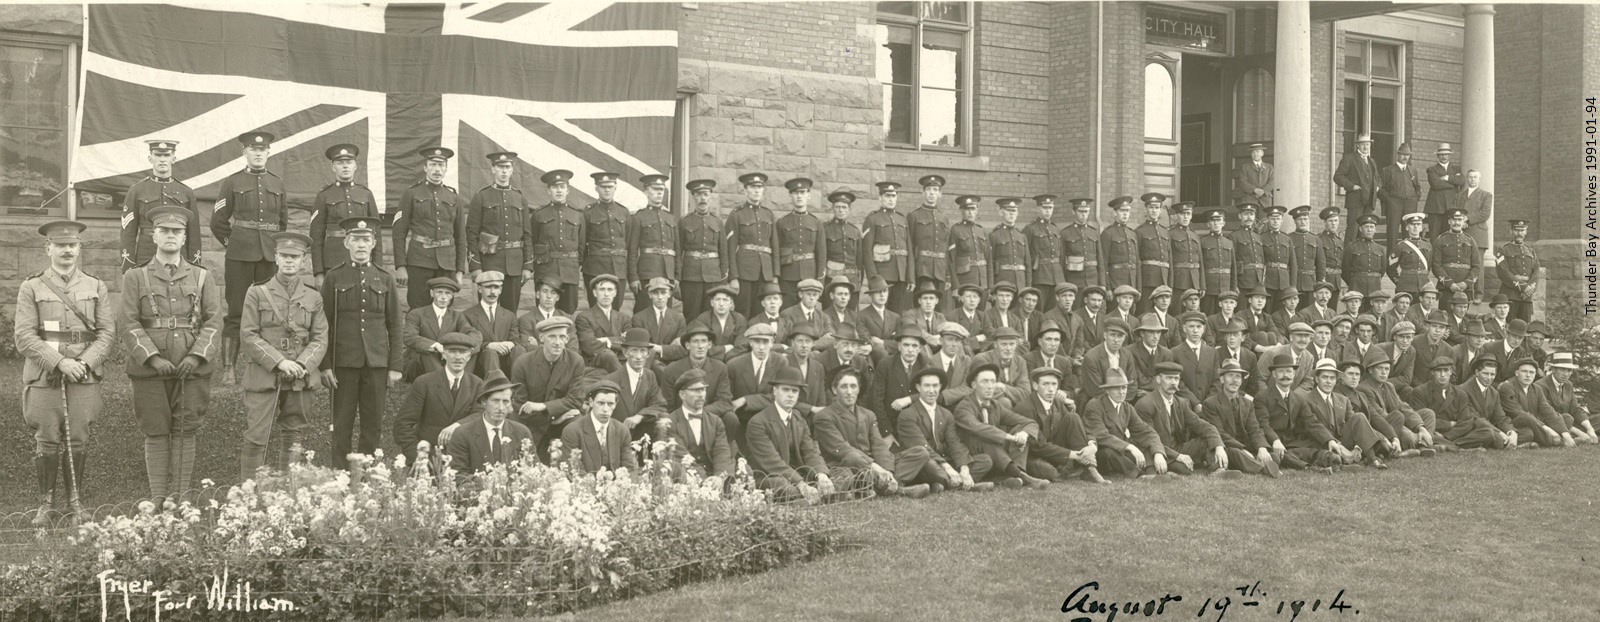 group portrait of WWI soldiers in front of Union Jack flag